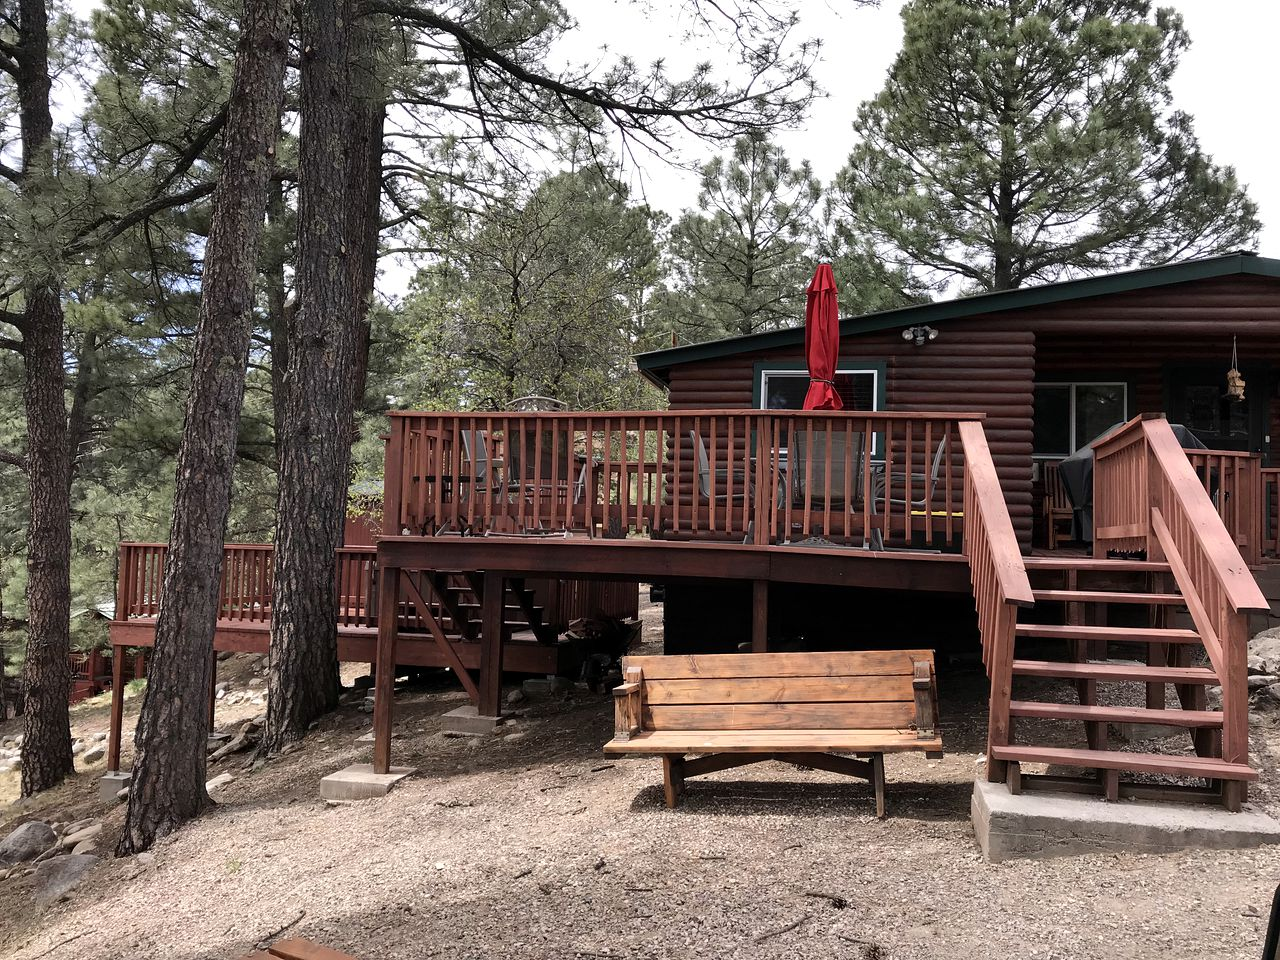 Cabins (Ruidoso, New Mexico, United States)